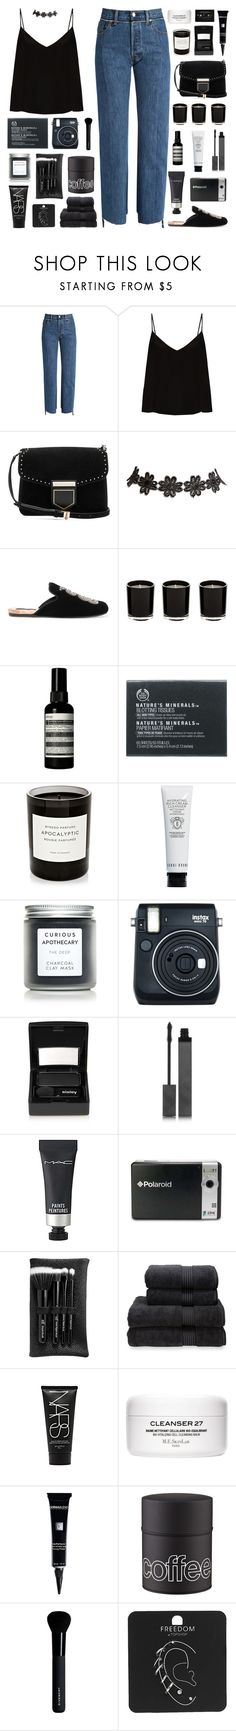 """""""There is nobody, no one outrun me"""" by pure-and-valuable ❤ liked on Polyvore featuring Vetements, Raey, Givenchy, Wet Seal, Gucci, Aesop, The Body Shop, Byredo, Bobbi Brown Cosmetics and SkinCare"""